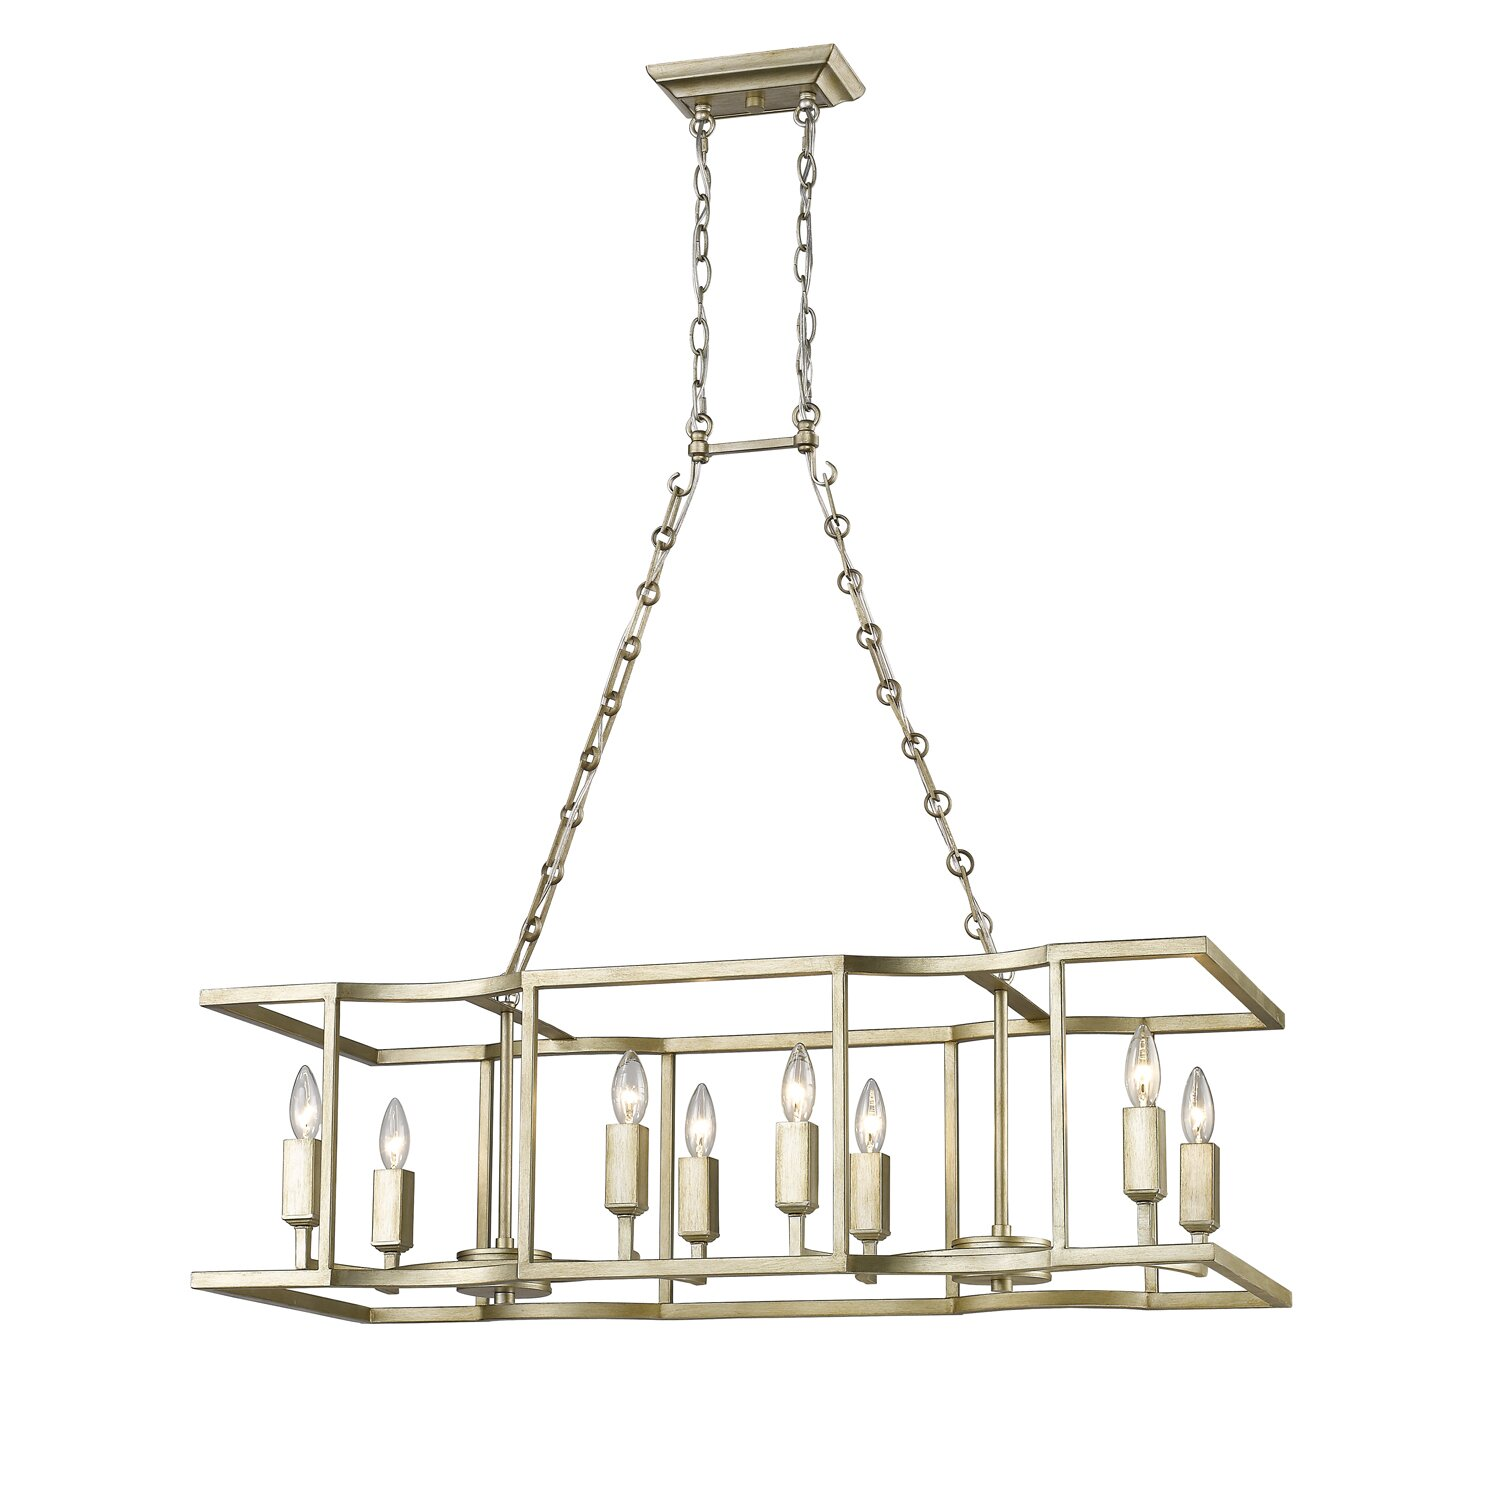 lighting ceiling lights kitchen island pendants mercer41 sku